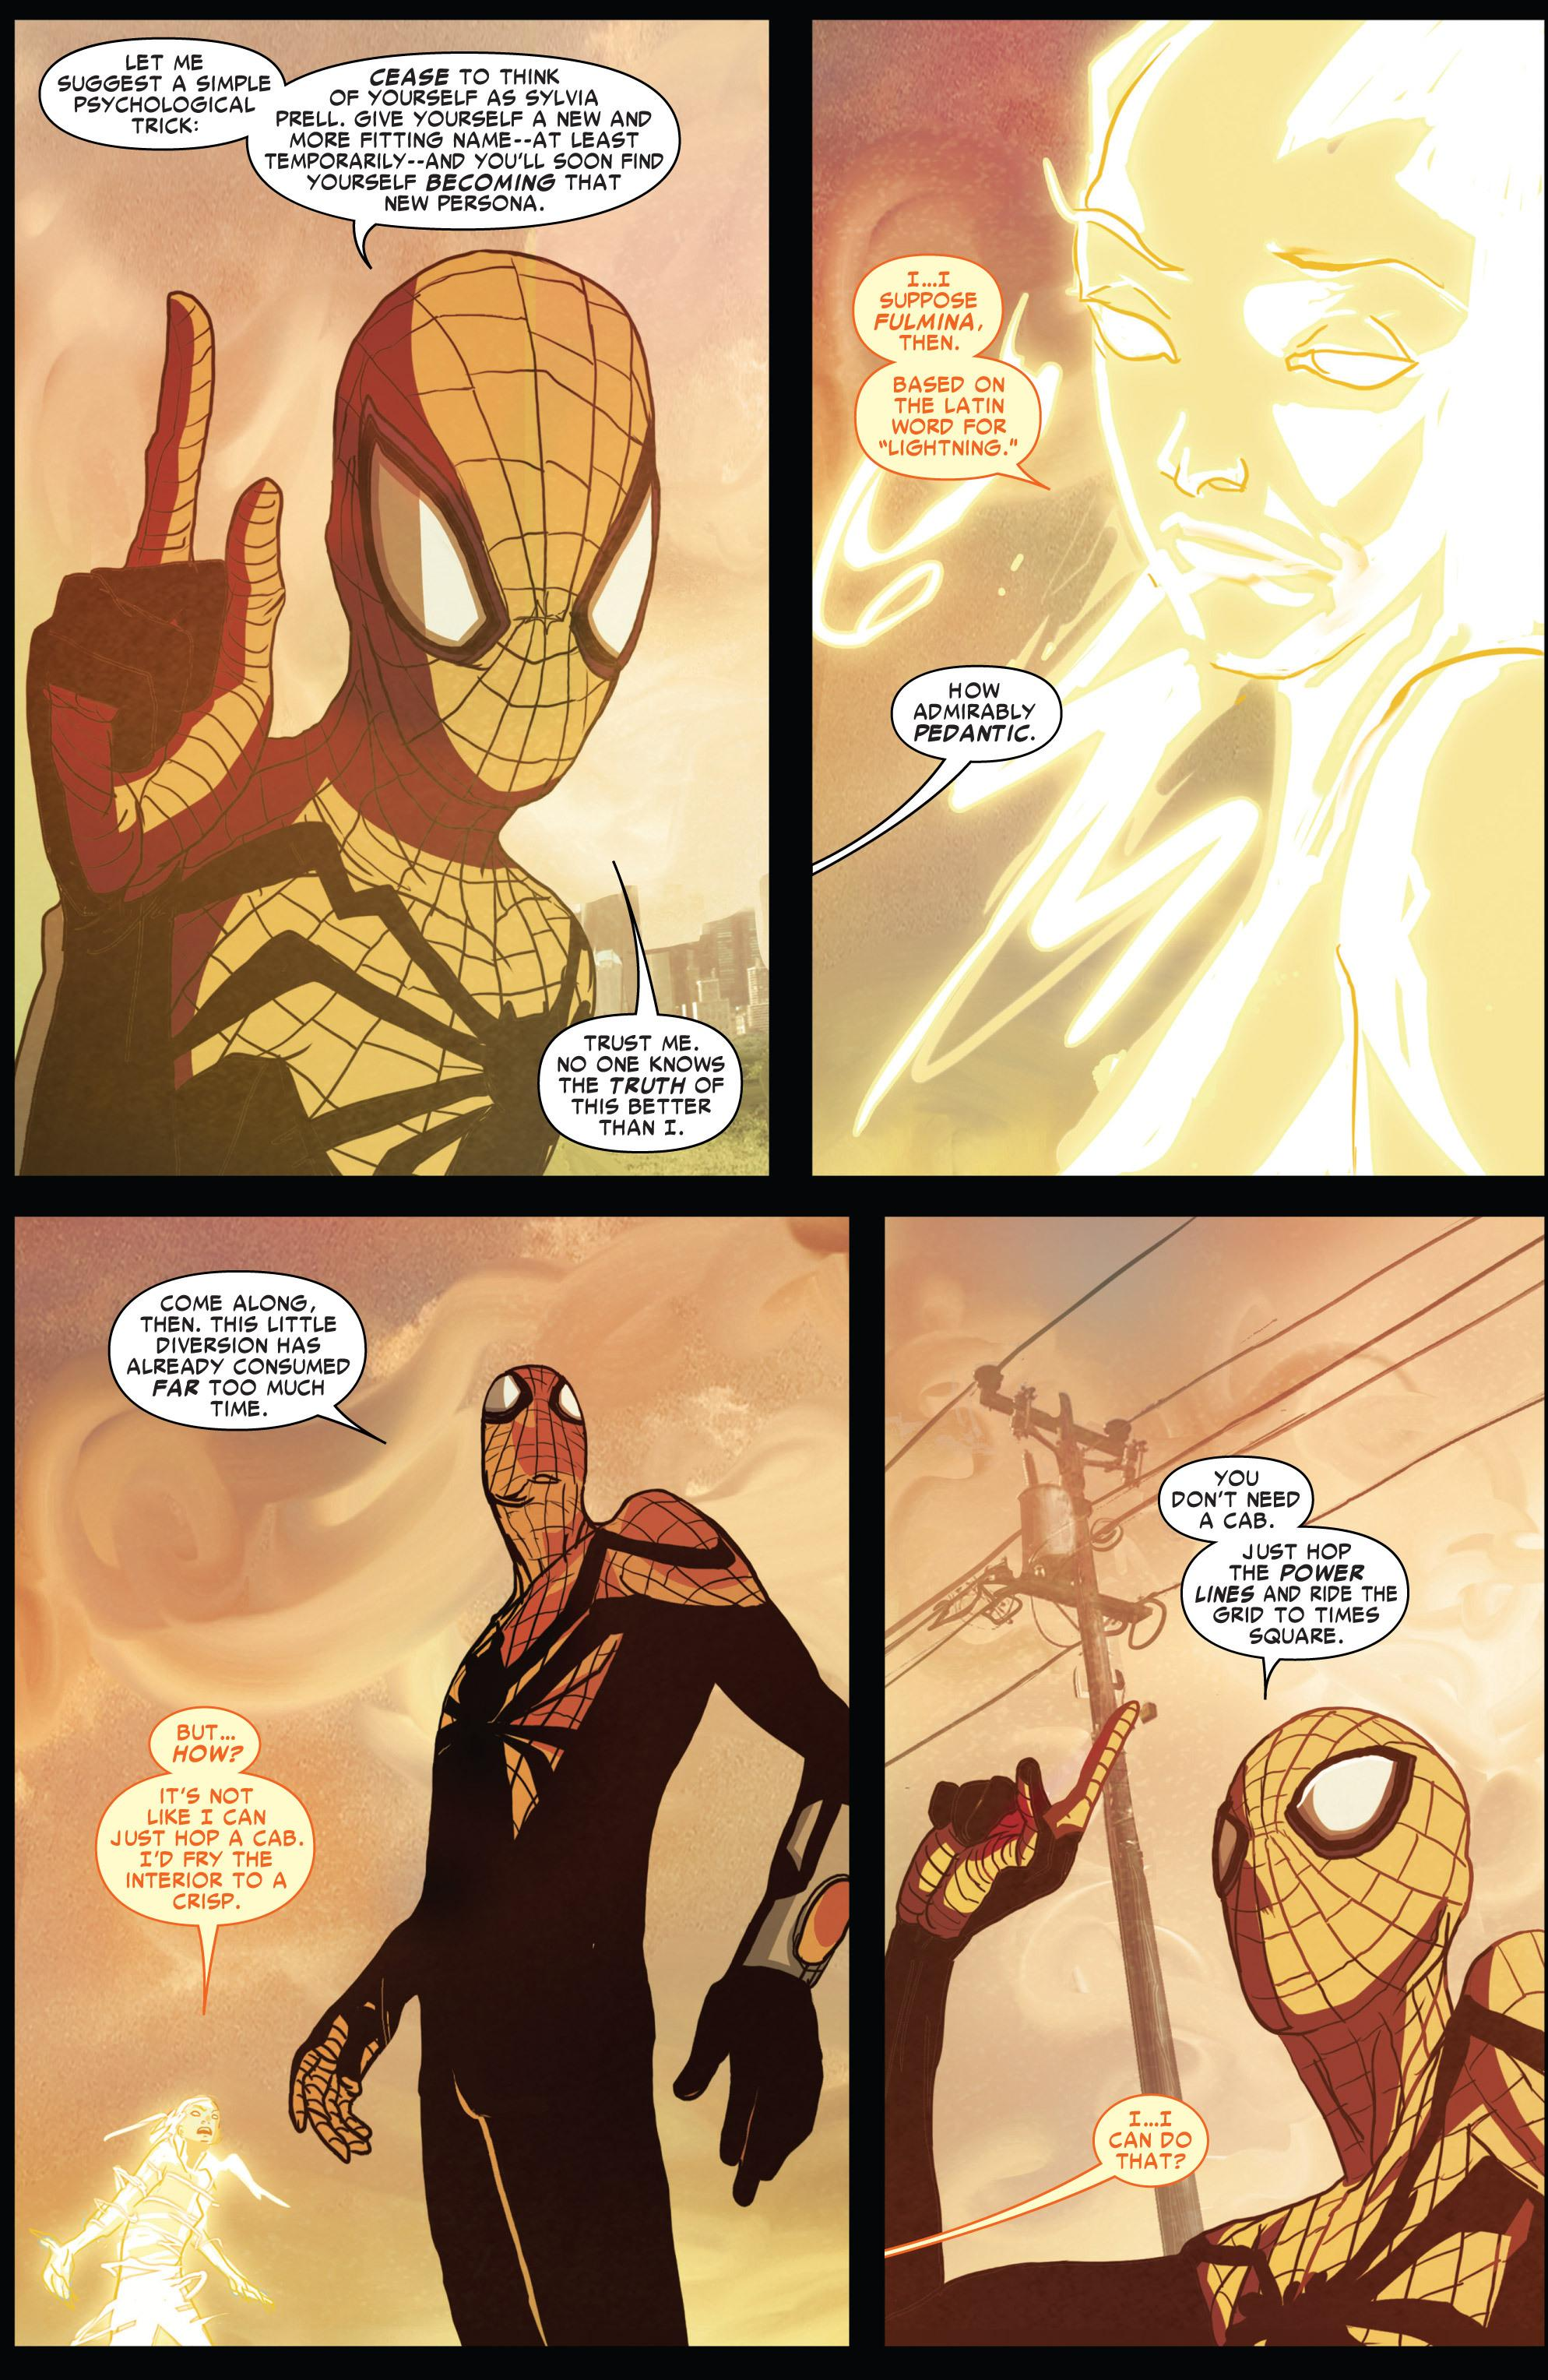 Superior Spider-Man Team-Up - Versus review